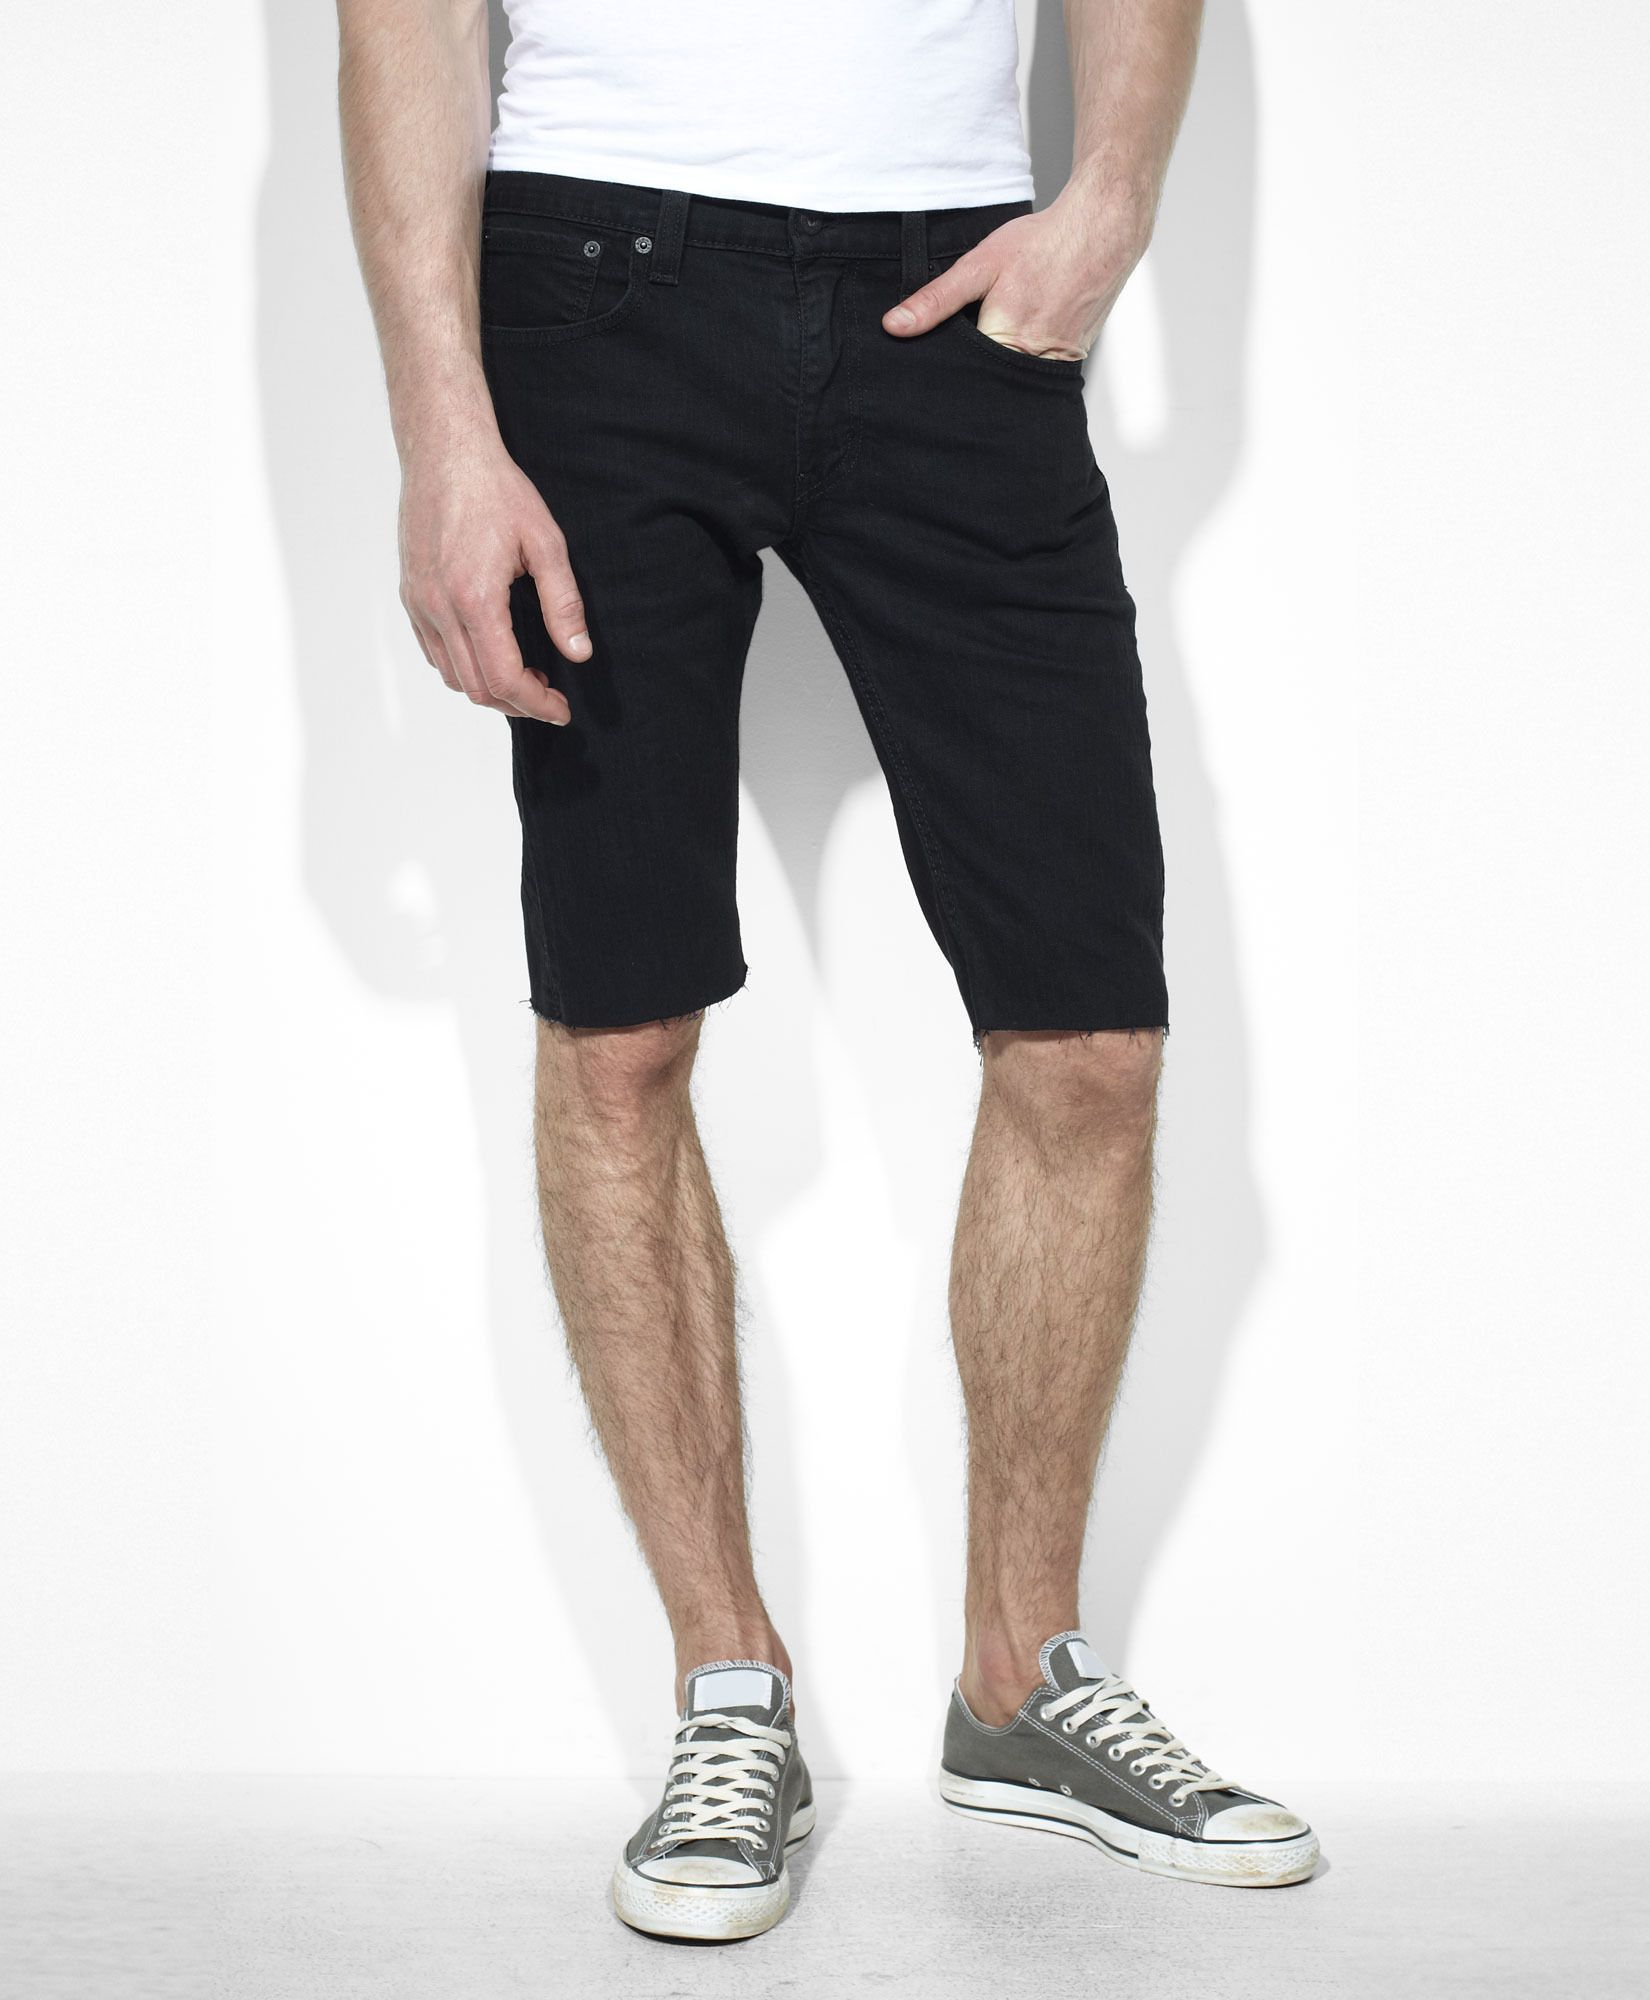 41fd7602b4102 Levi's $55 Skinny Cut-Off Shorts - Black Stretch - Shorts | Men's ...